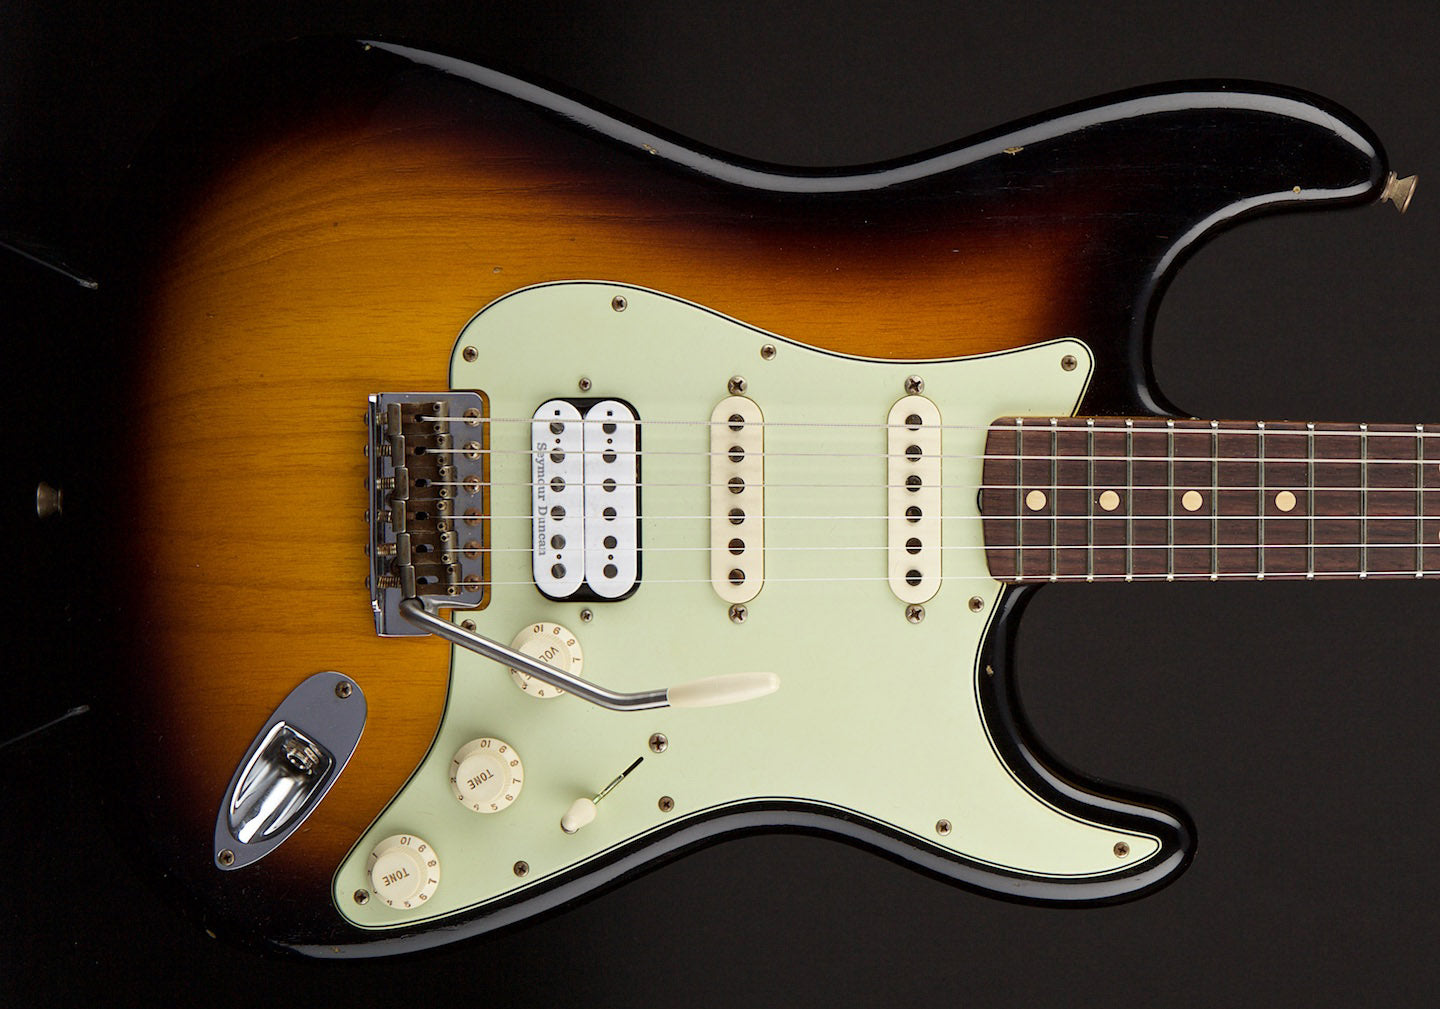 Fender Custom Shop Stratocaster WG/John Cruz Spec 63 Strat Journeyman Relic 2 Tone Sunburst #R83949